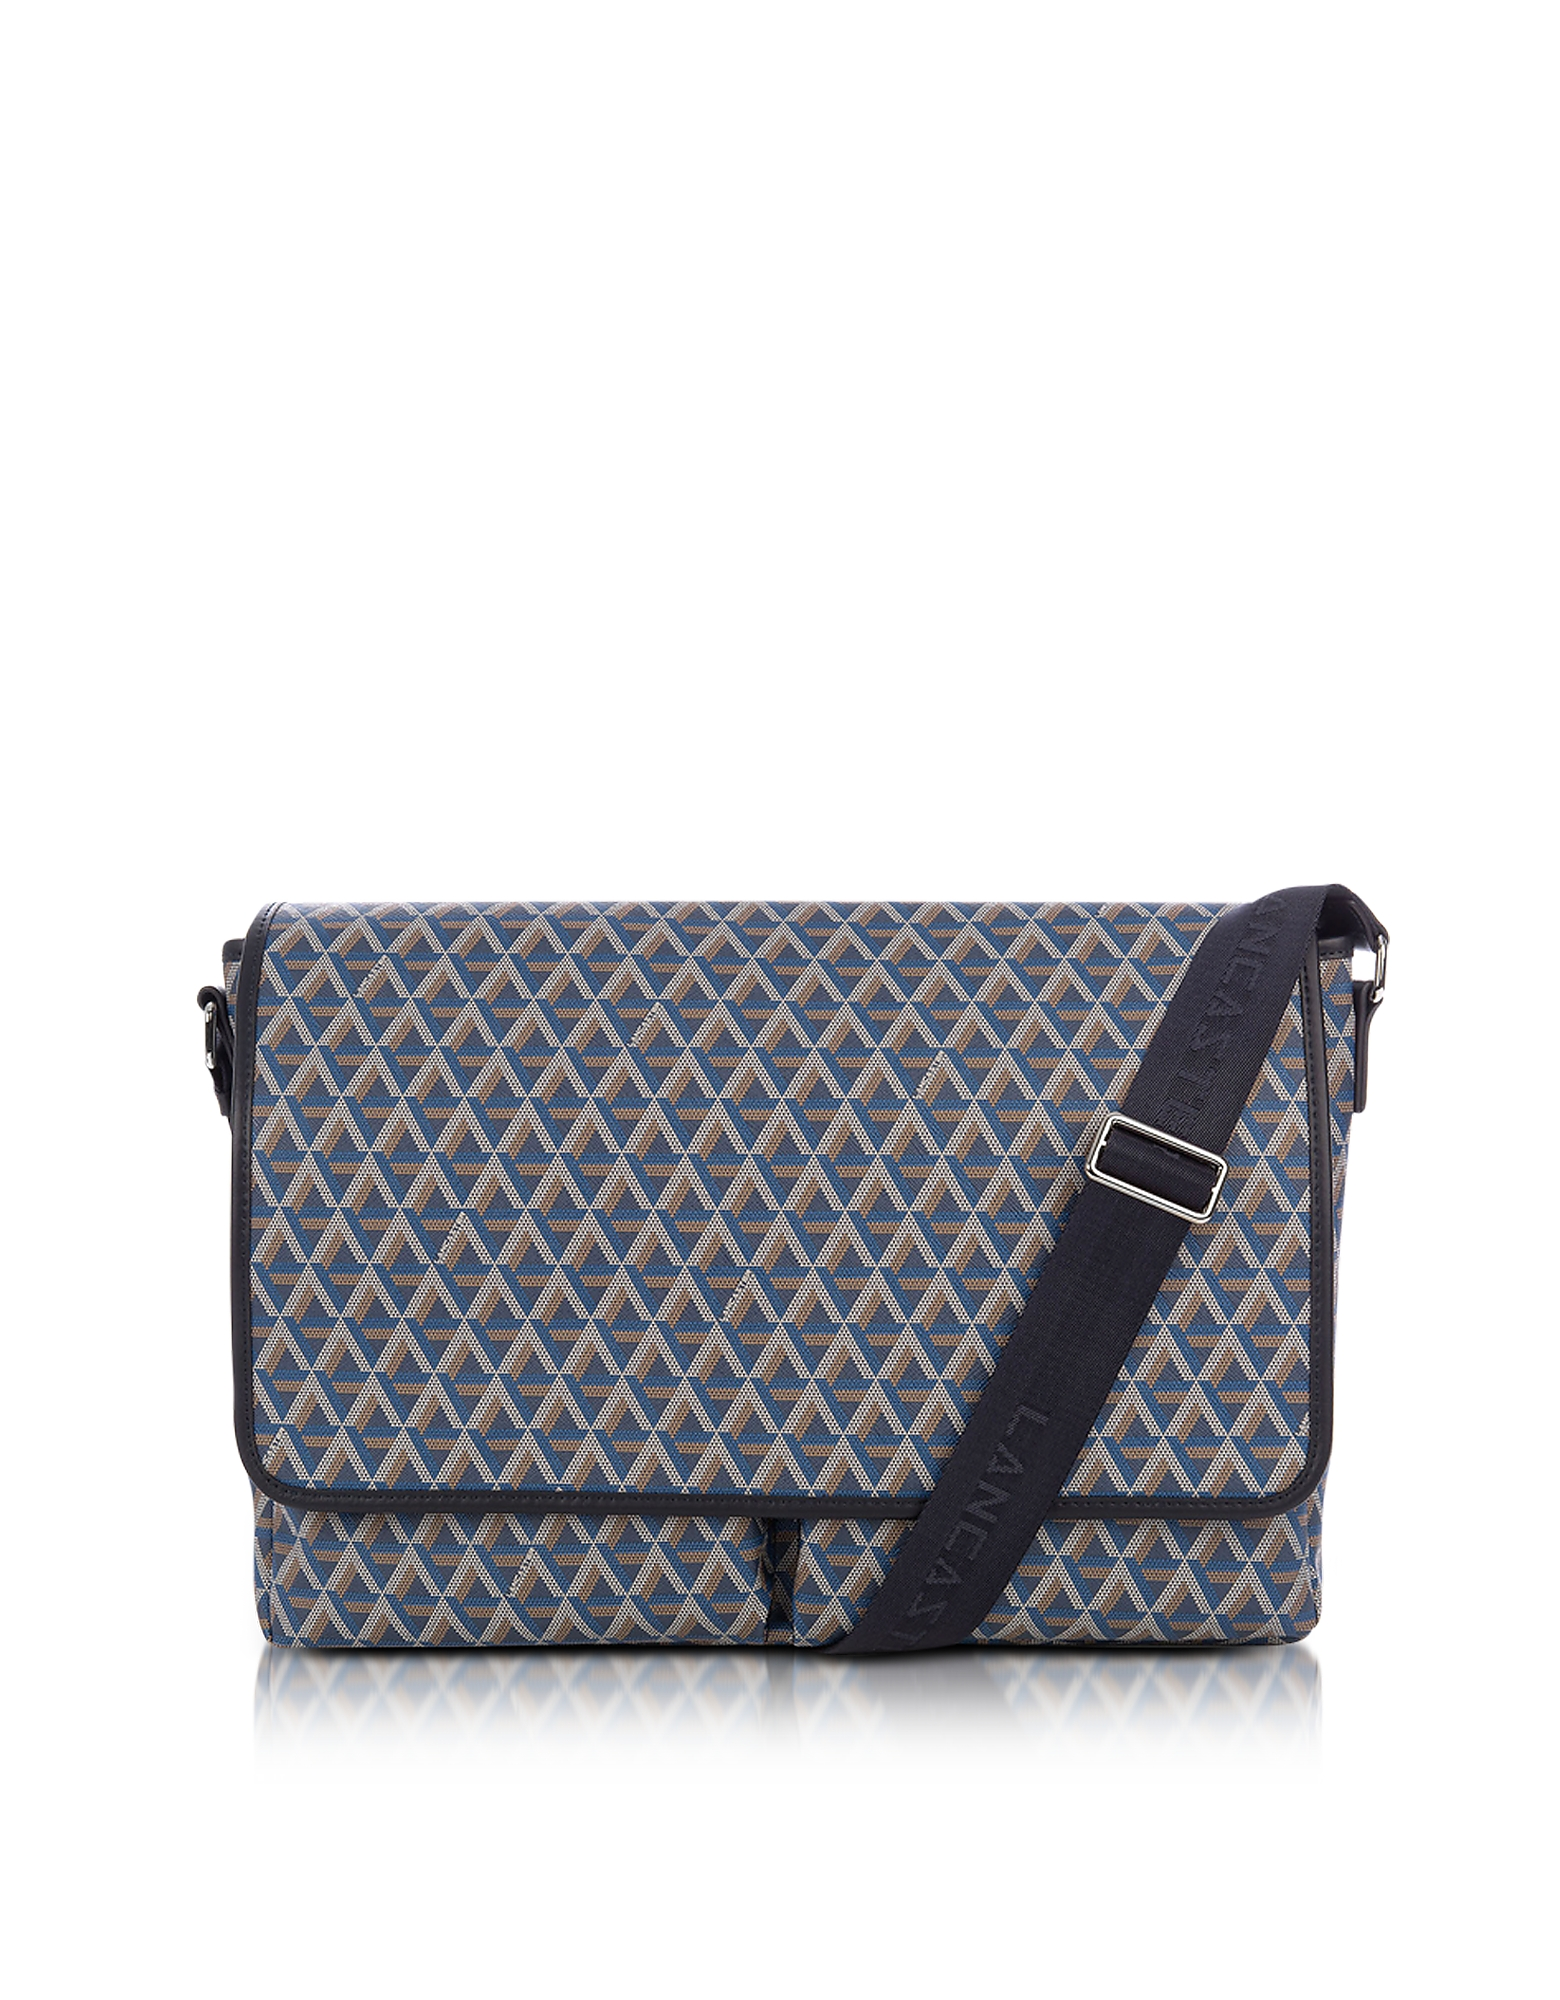 Image of Lancaster Paris Designer Briefcases, Ikon Blue Coated Canvas Men's Messenger Bag